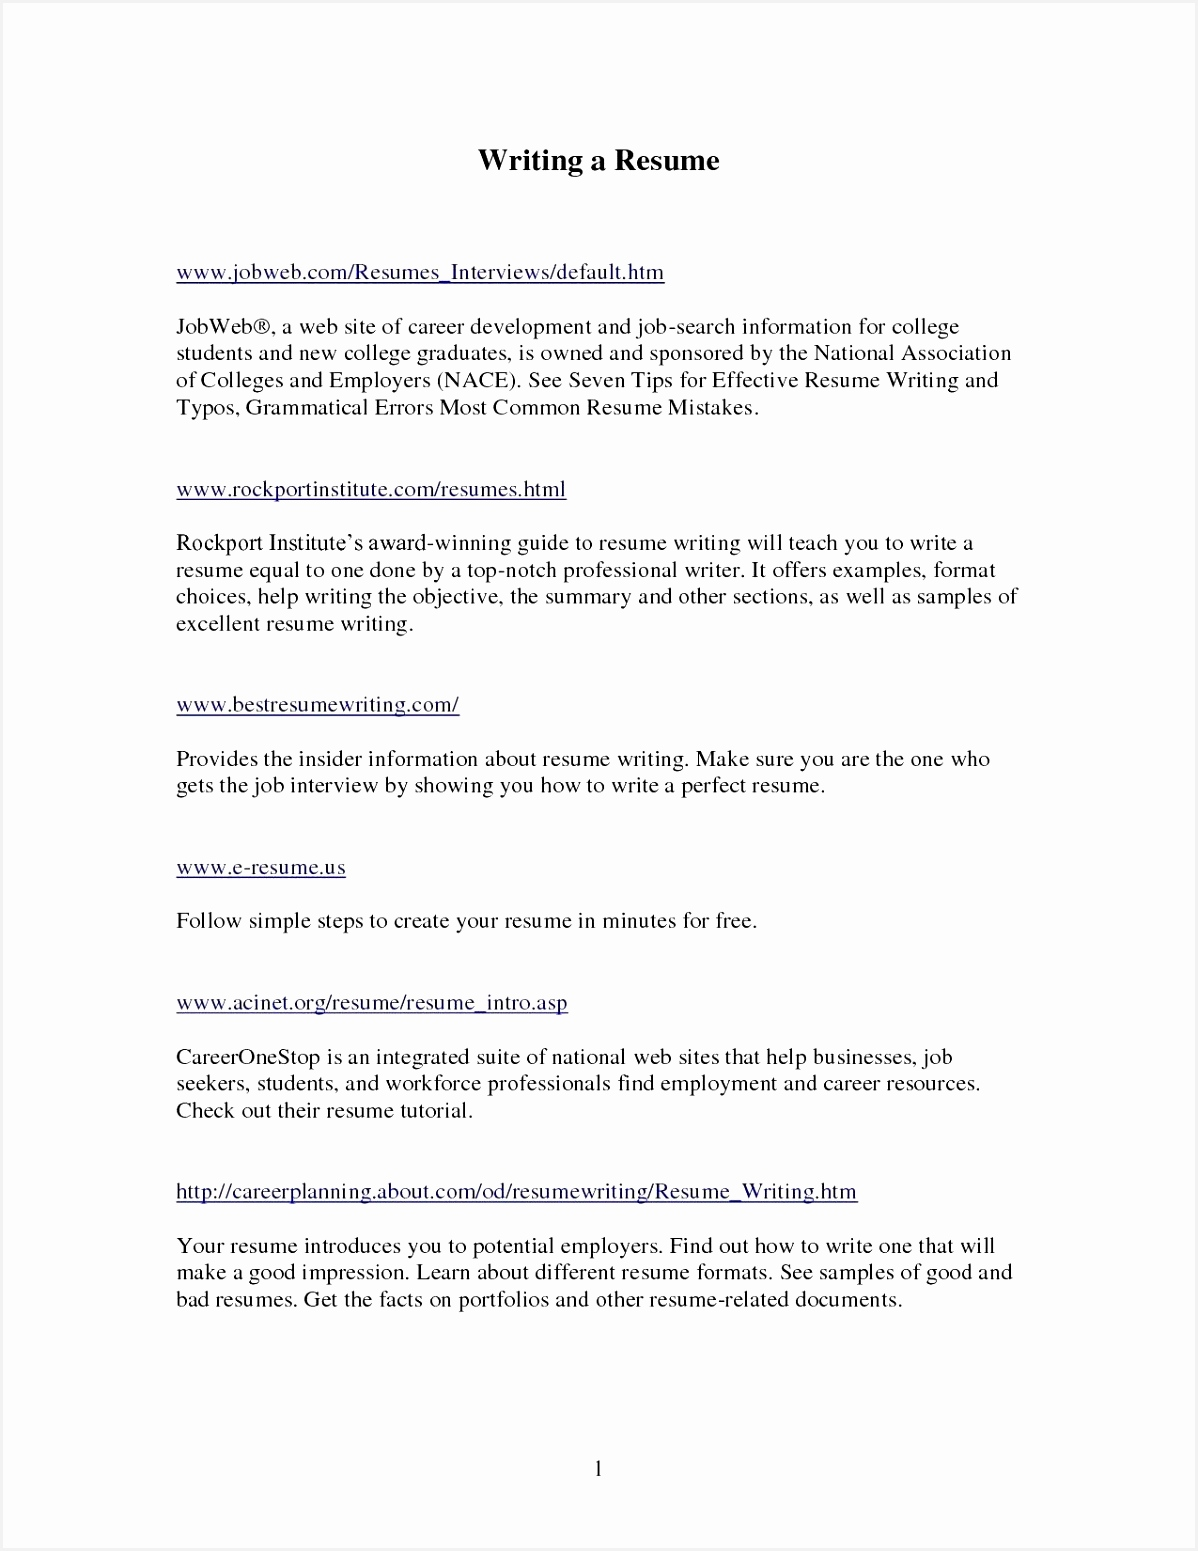 Resume Letter format Examples Beautiful Resume Writing Exercises 15511198yfkug